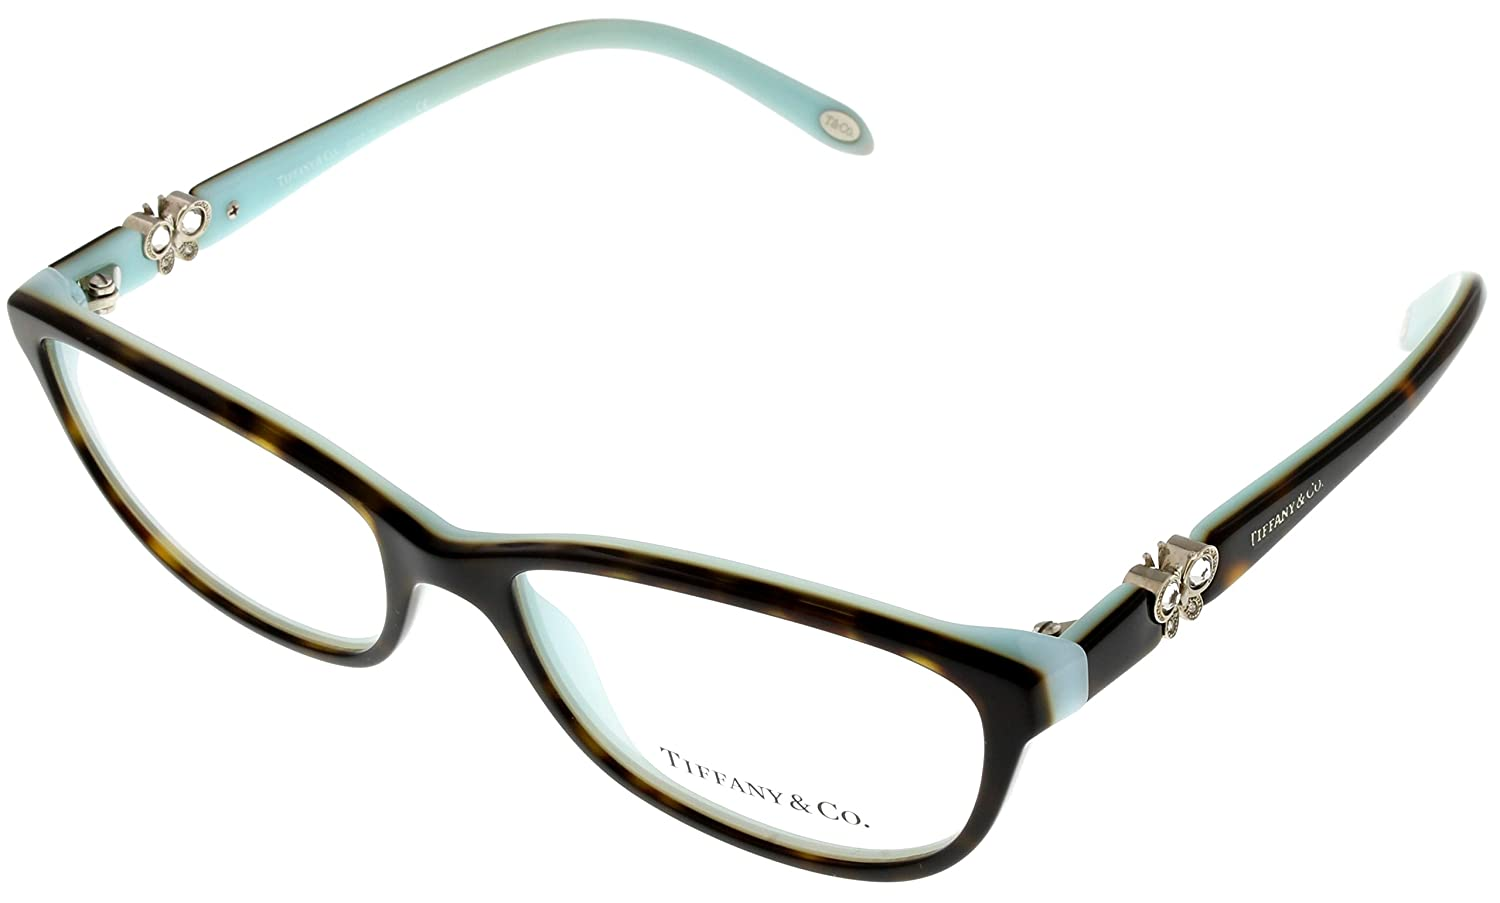 0aa52b7954 Amazon.com  Tiffany   Co. Prescription Eyeglasses Frame Women Havana TF 2051 -B 8134 Rectangular  Clothing